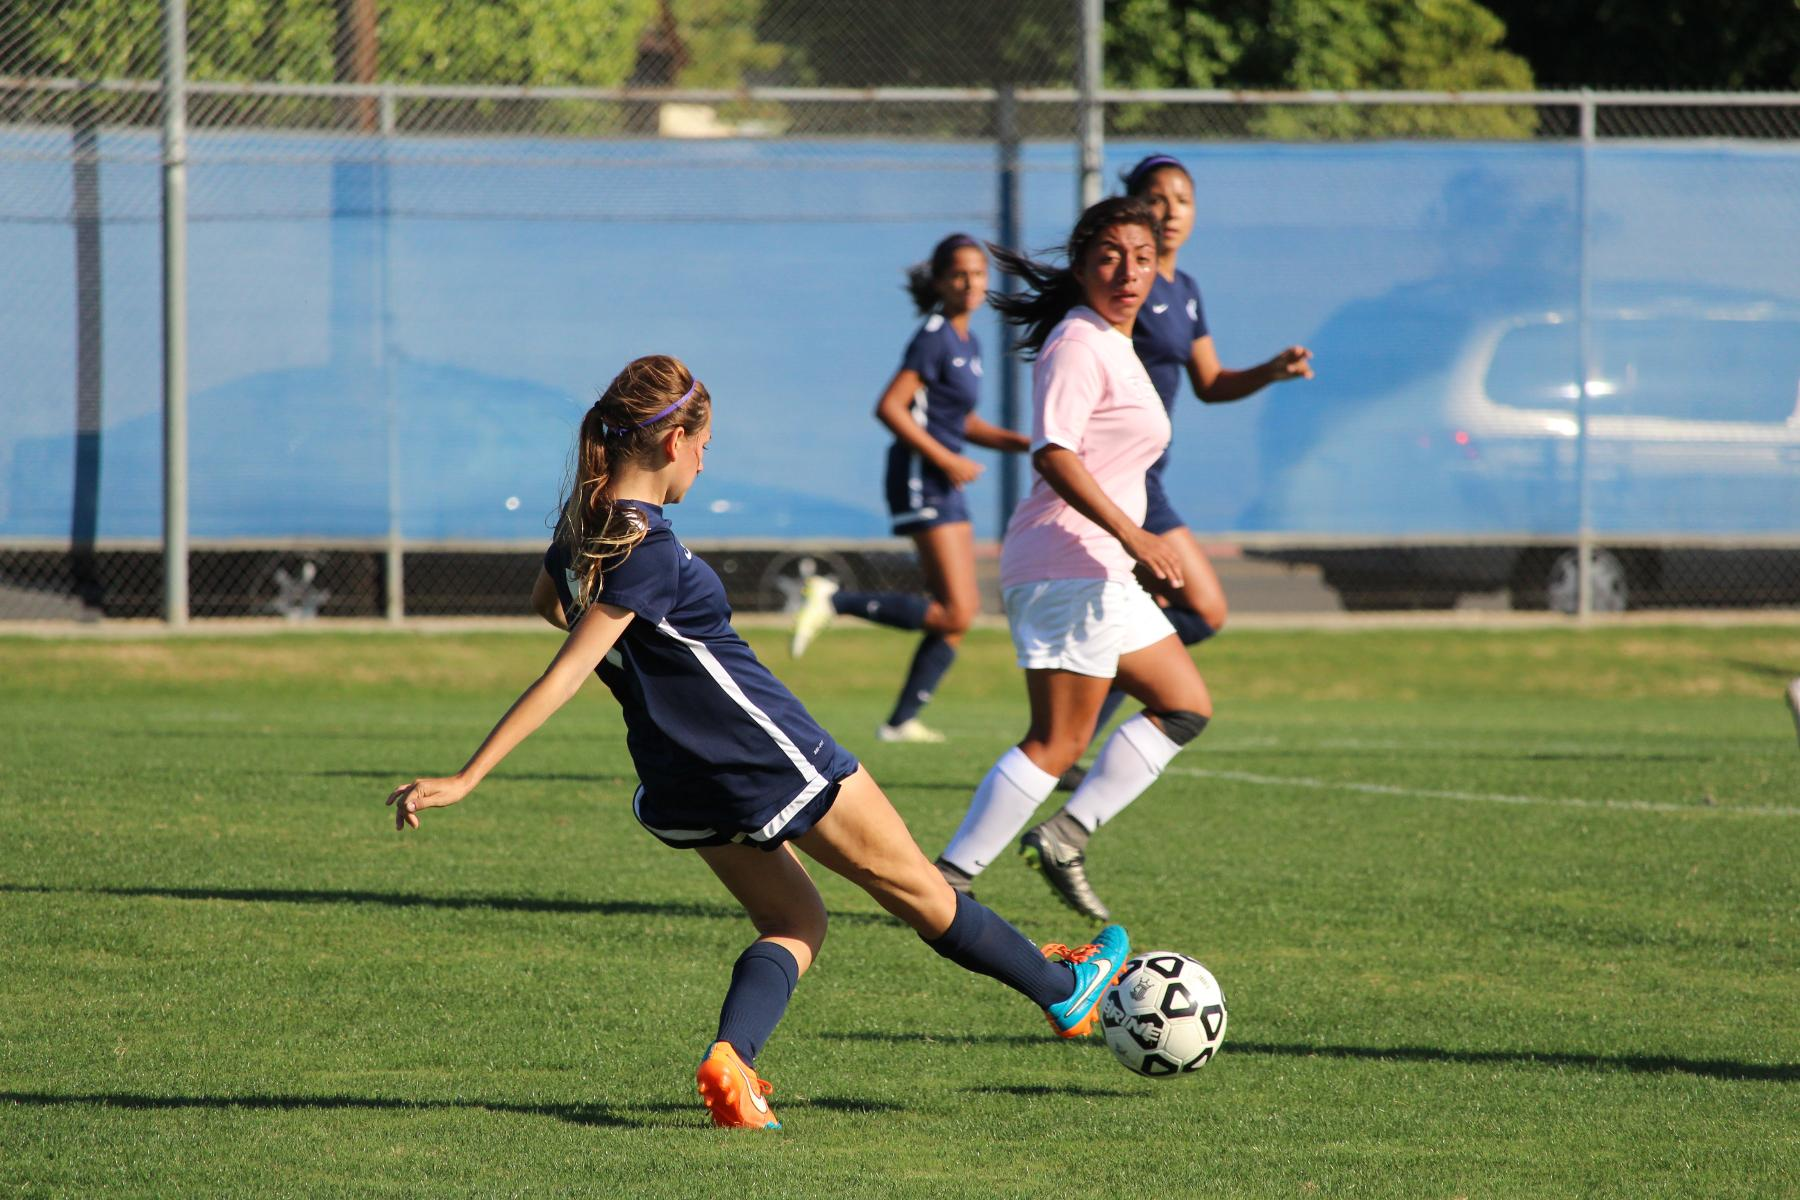 Chargers-Hornets Ends In 1-1 Tie